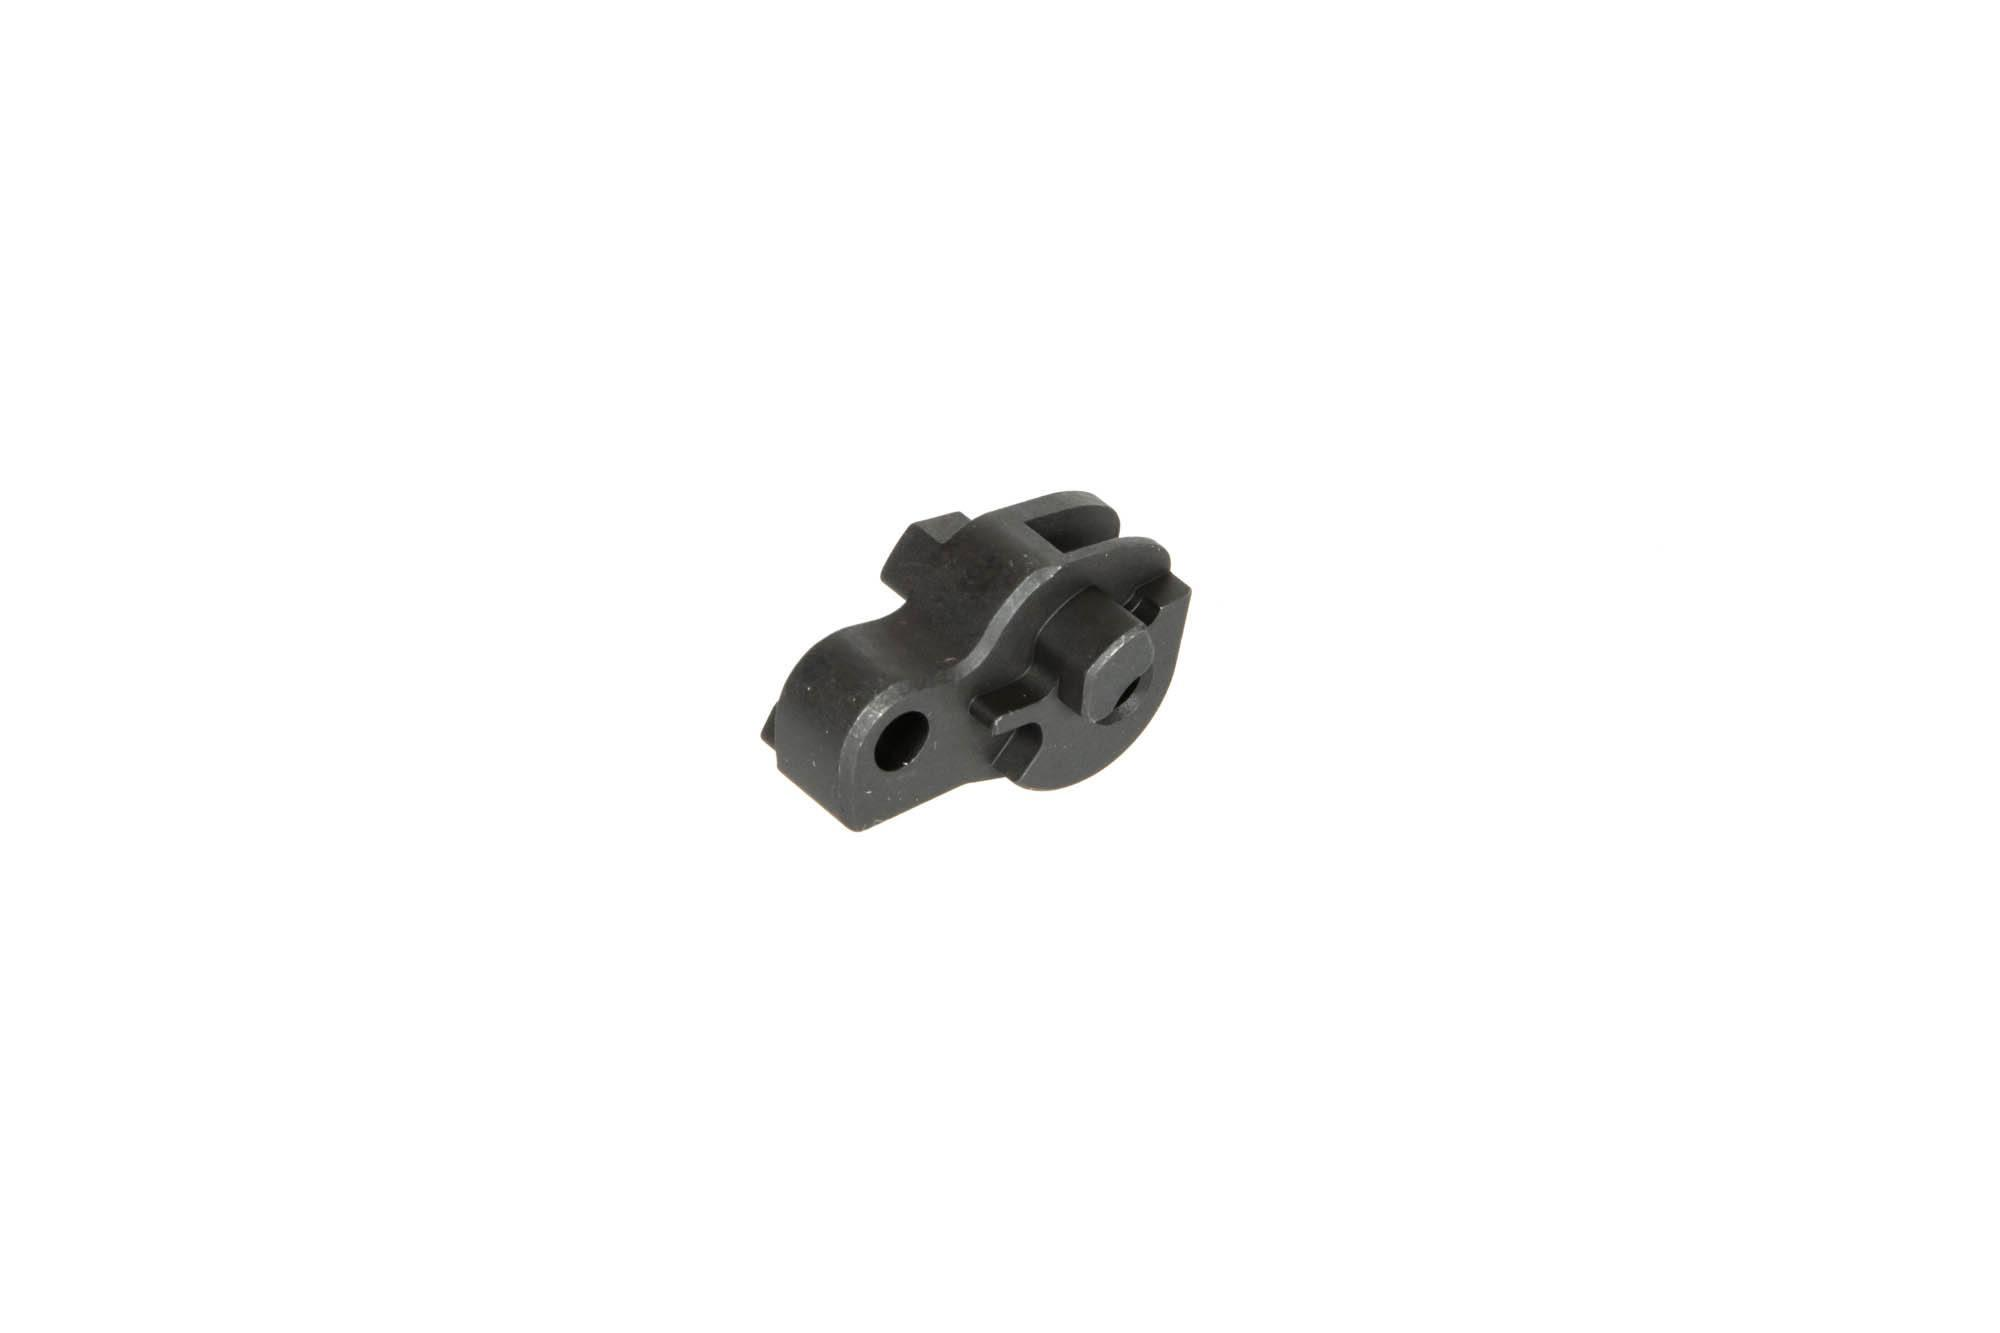 Action Army AAP-01/G18 CNC Steel Hammer - U01-018